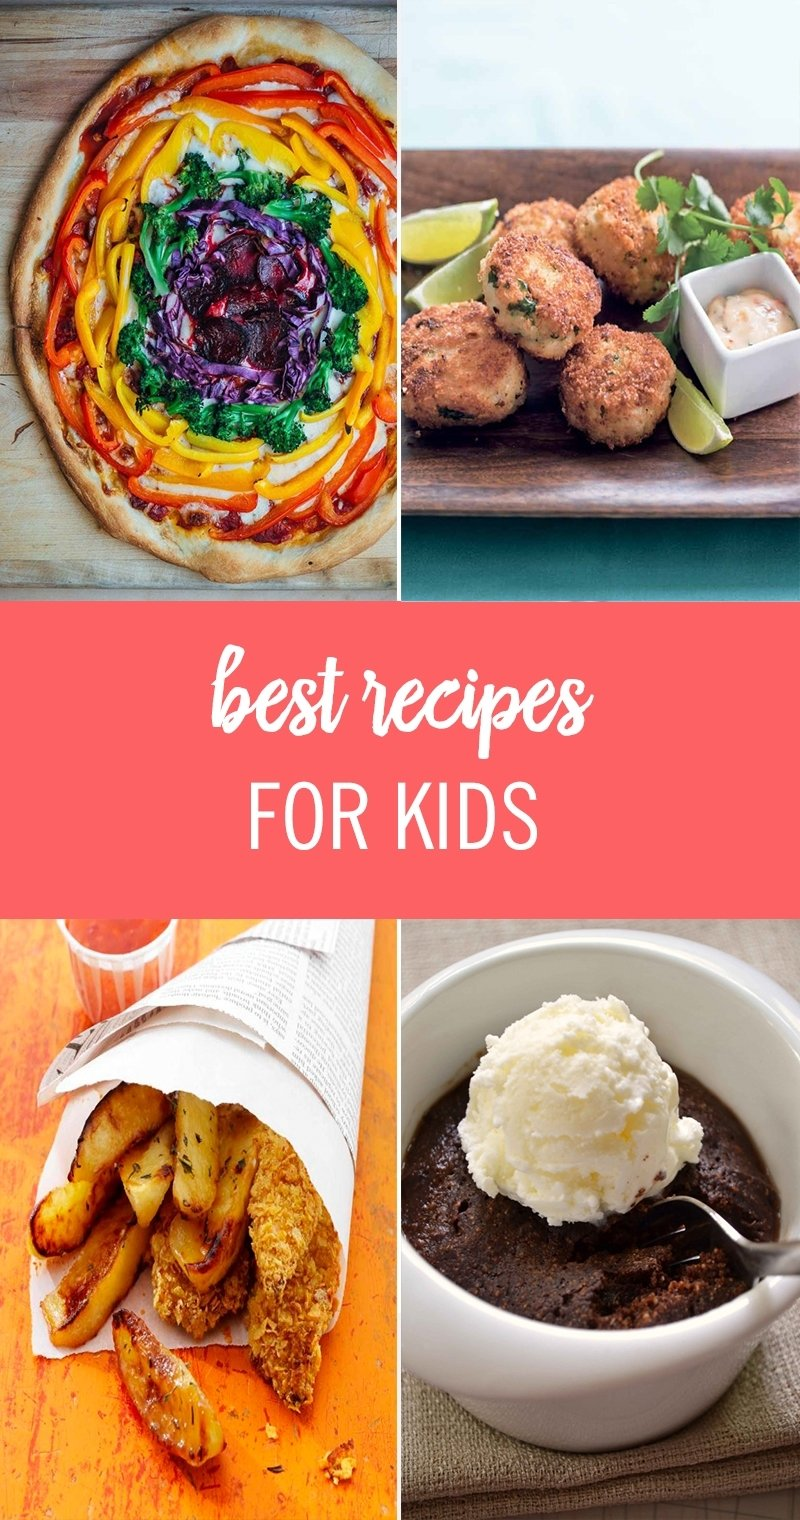 10 Attractive Easy Healthy Lunch Ideas For Kids cooking for kids 50 best recipes for kids and picky eaters 4 2020